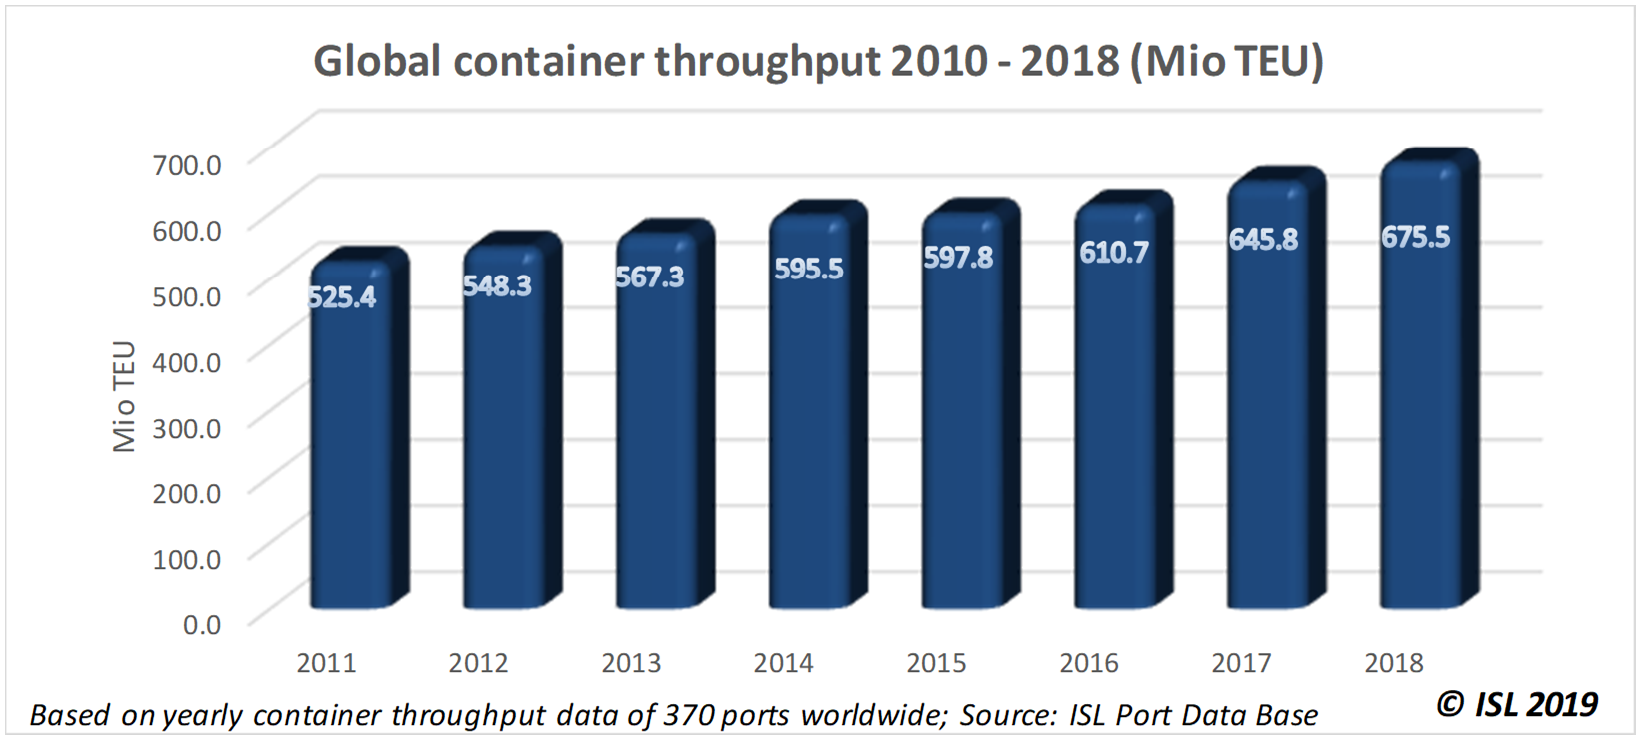 World container handling: rough seas ahead after solid growth in 2018